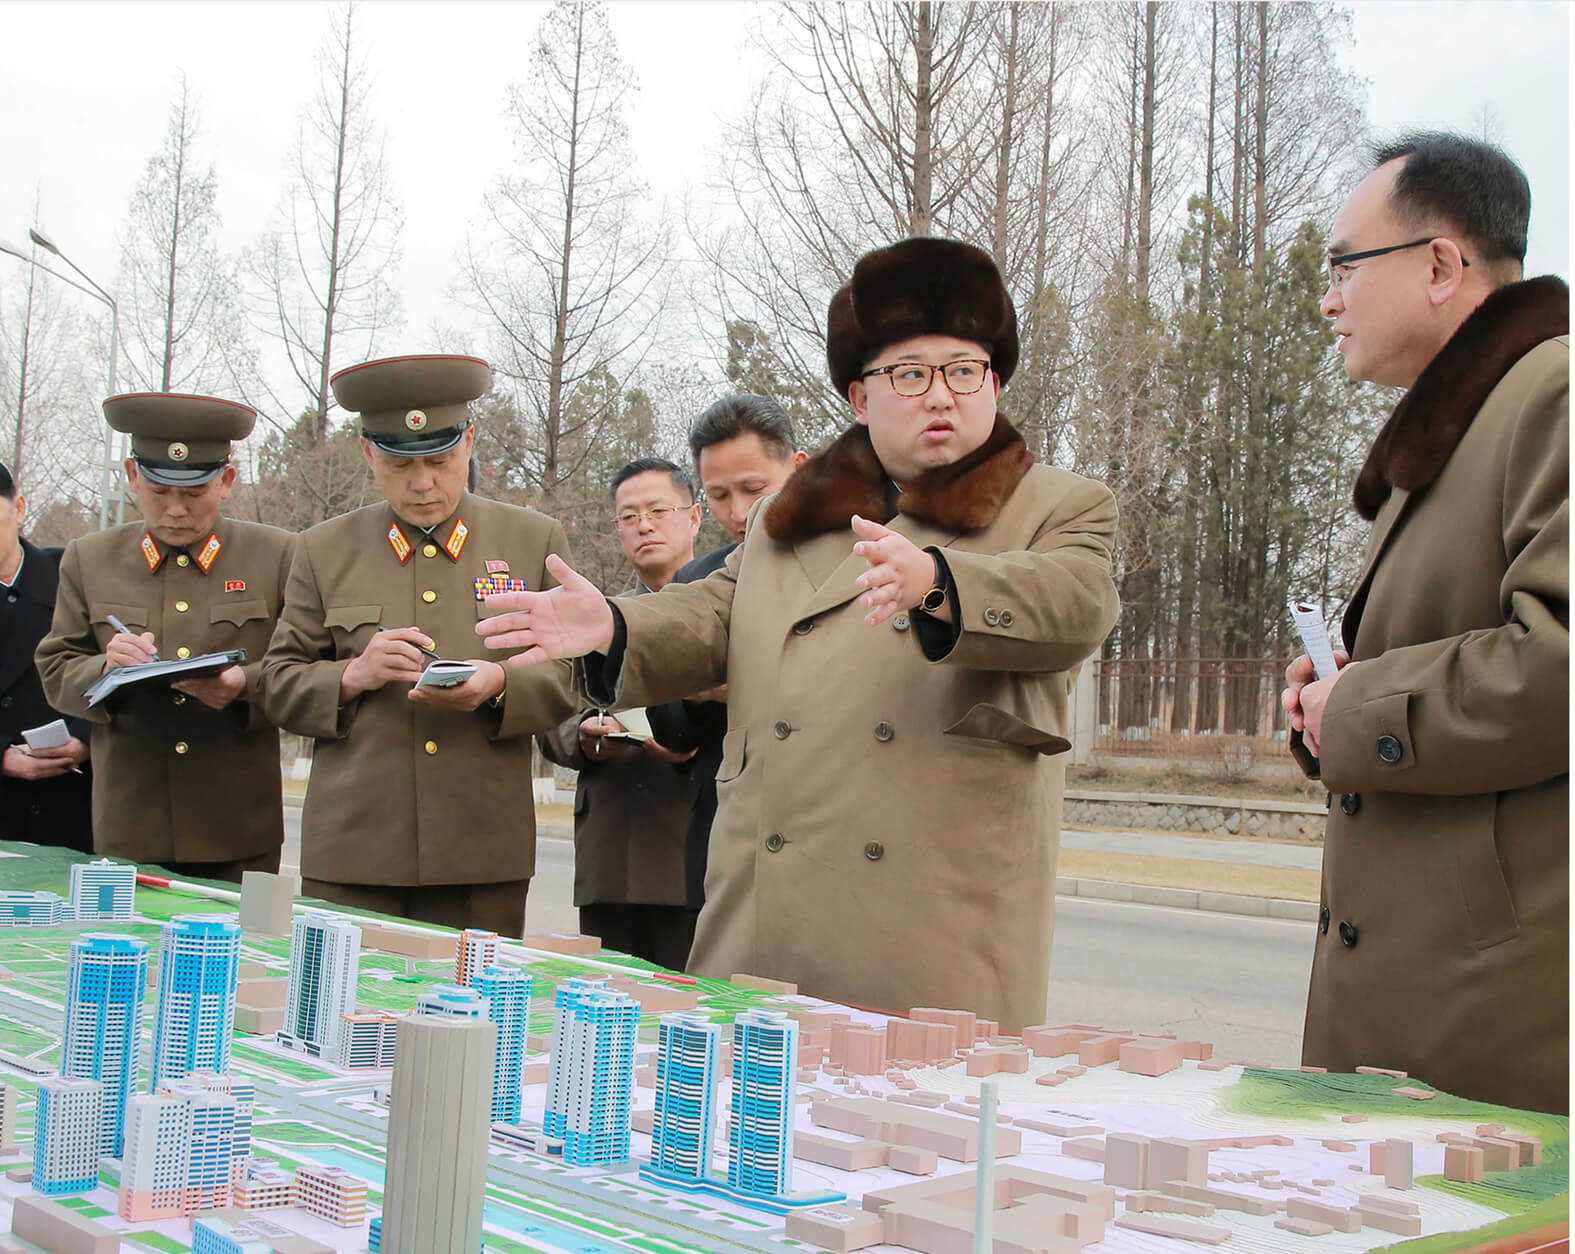 Kim Jong Un guiding the construction project of Ryomyong Street in March 2016